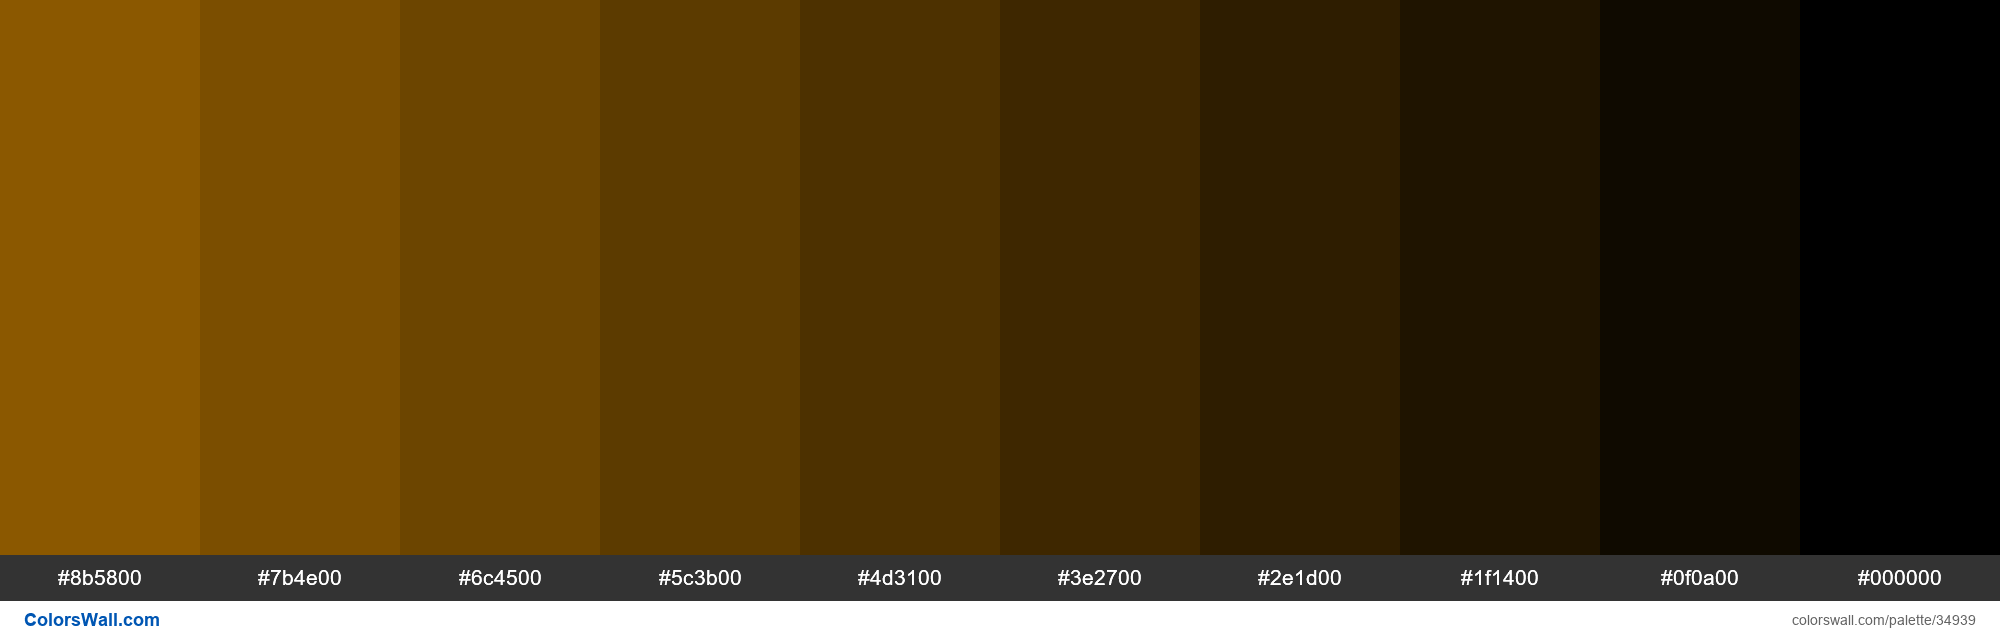 Shades XKCD Color raw sienna #9a6200 hex - #34939